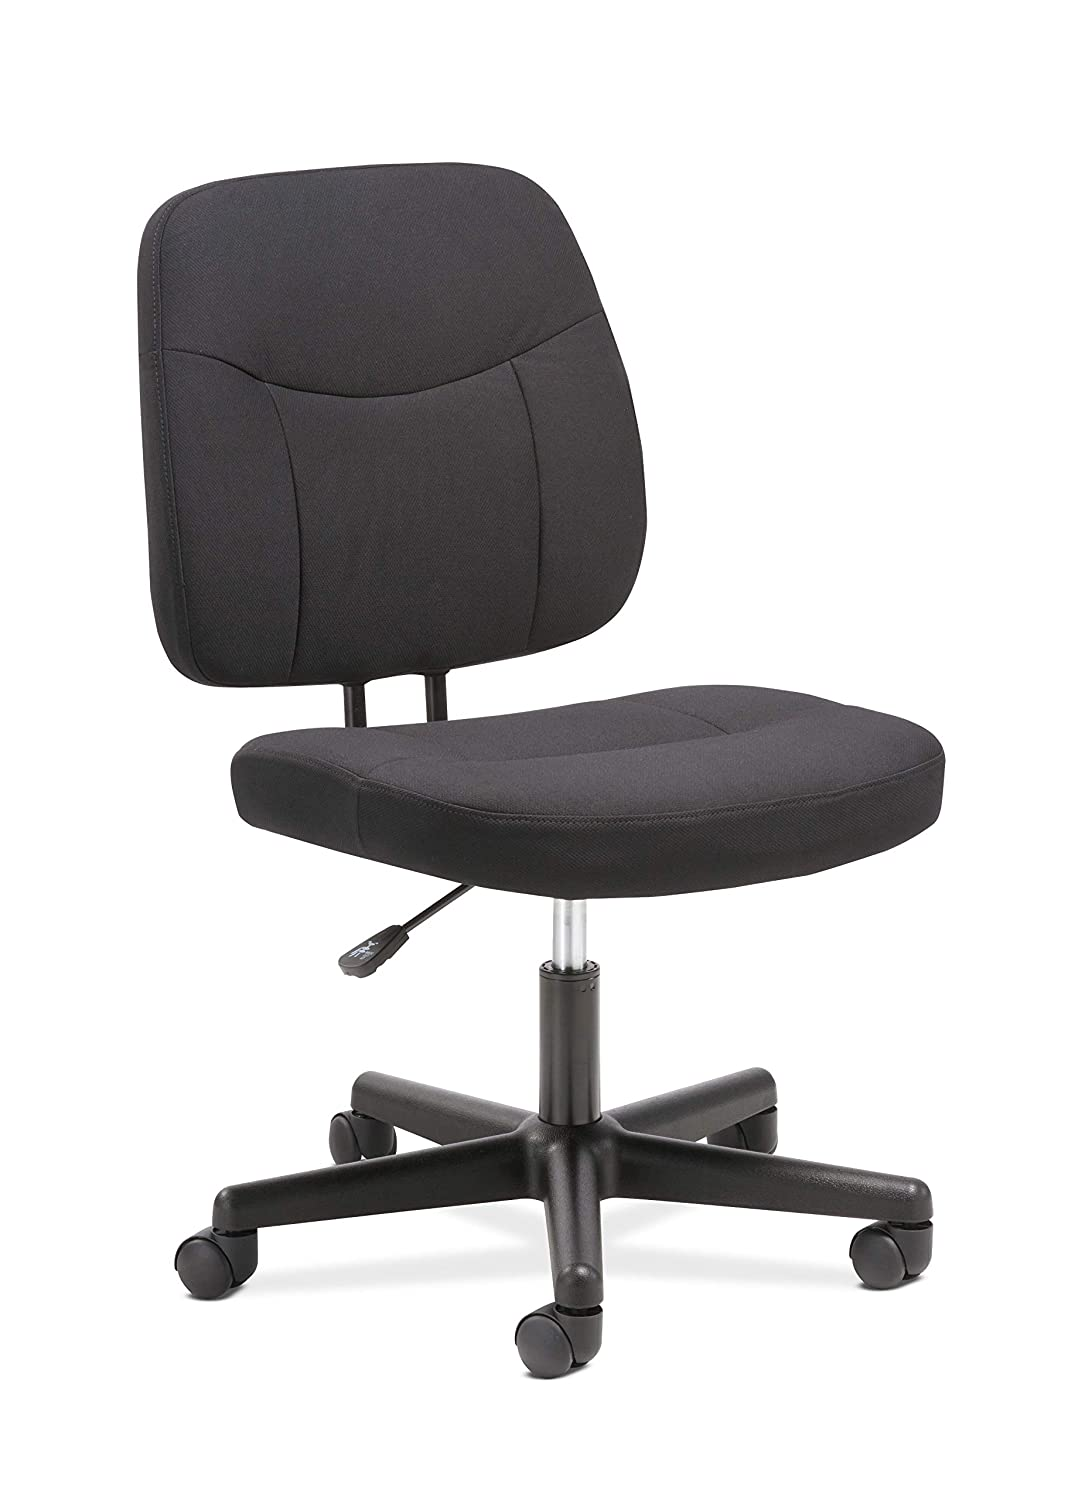 Sadie Task Chair-Computer Chair for Office Desk, Black HVST401